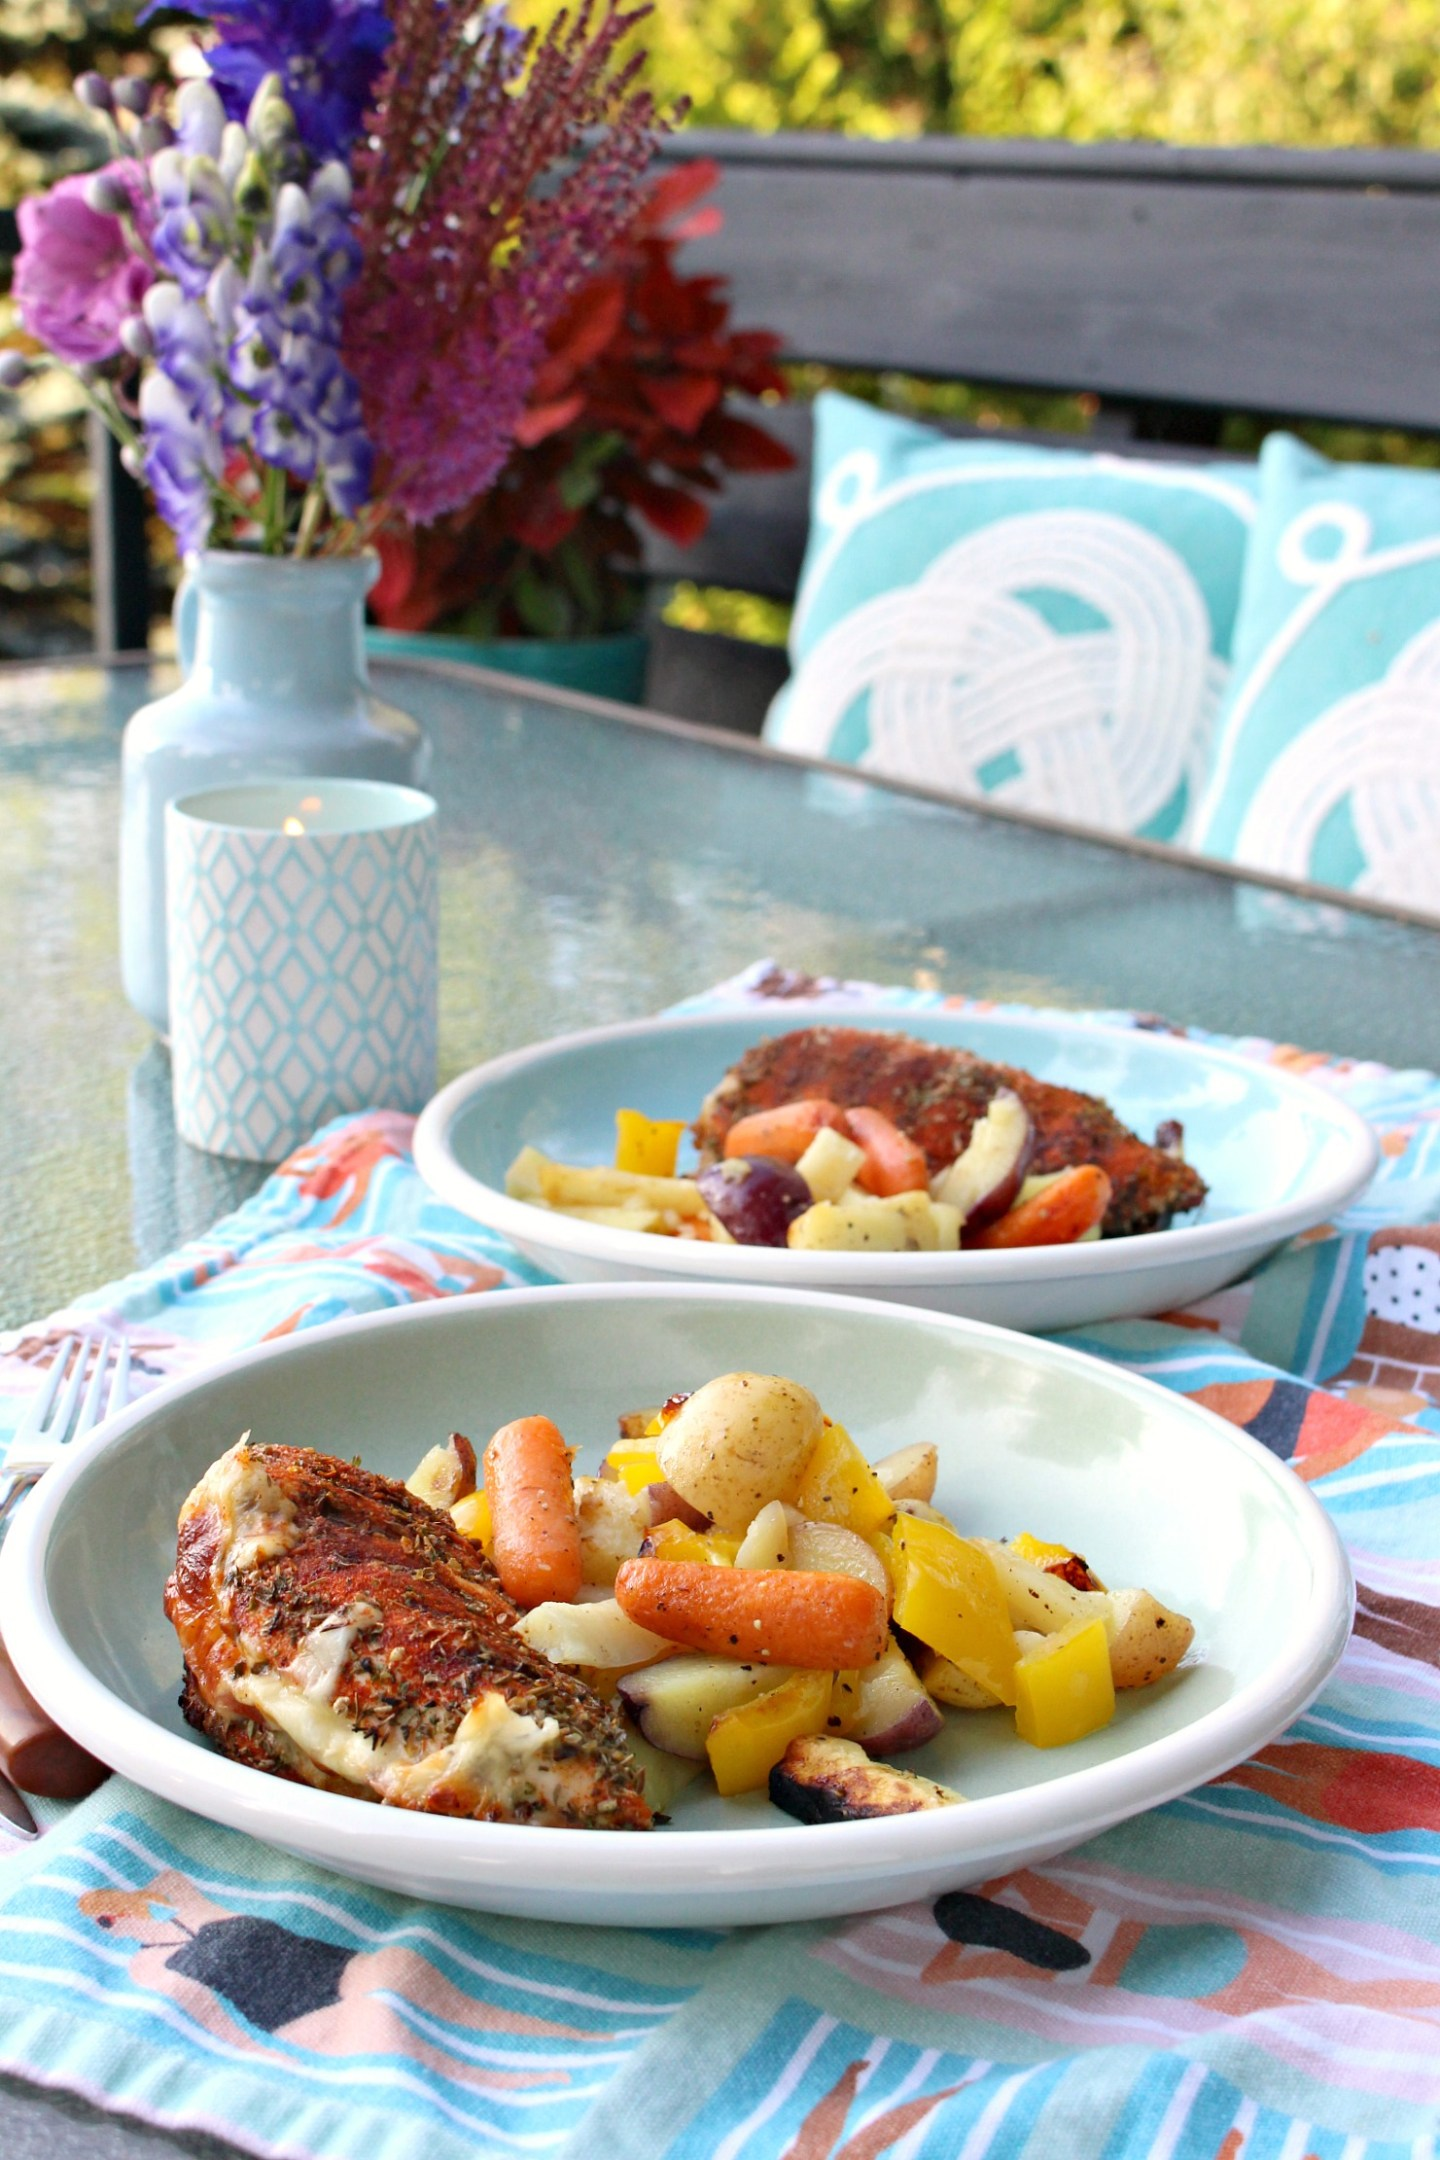 Cheese Stuffed Grilled Chicken Breast Recipe + Blue Portable Gas Grill (Sponsored by We Love Fire)